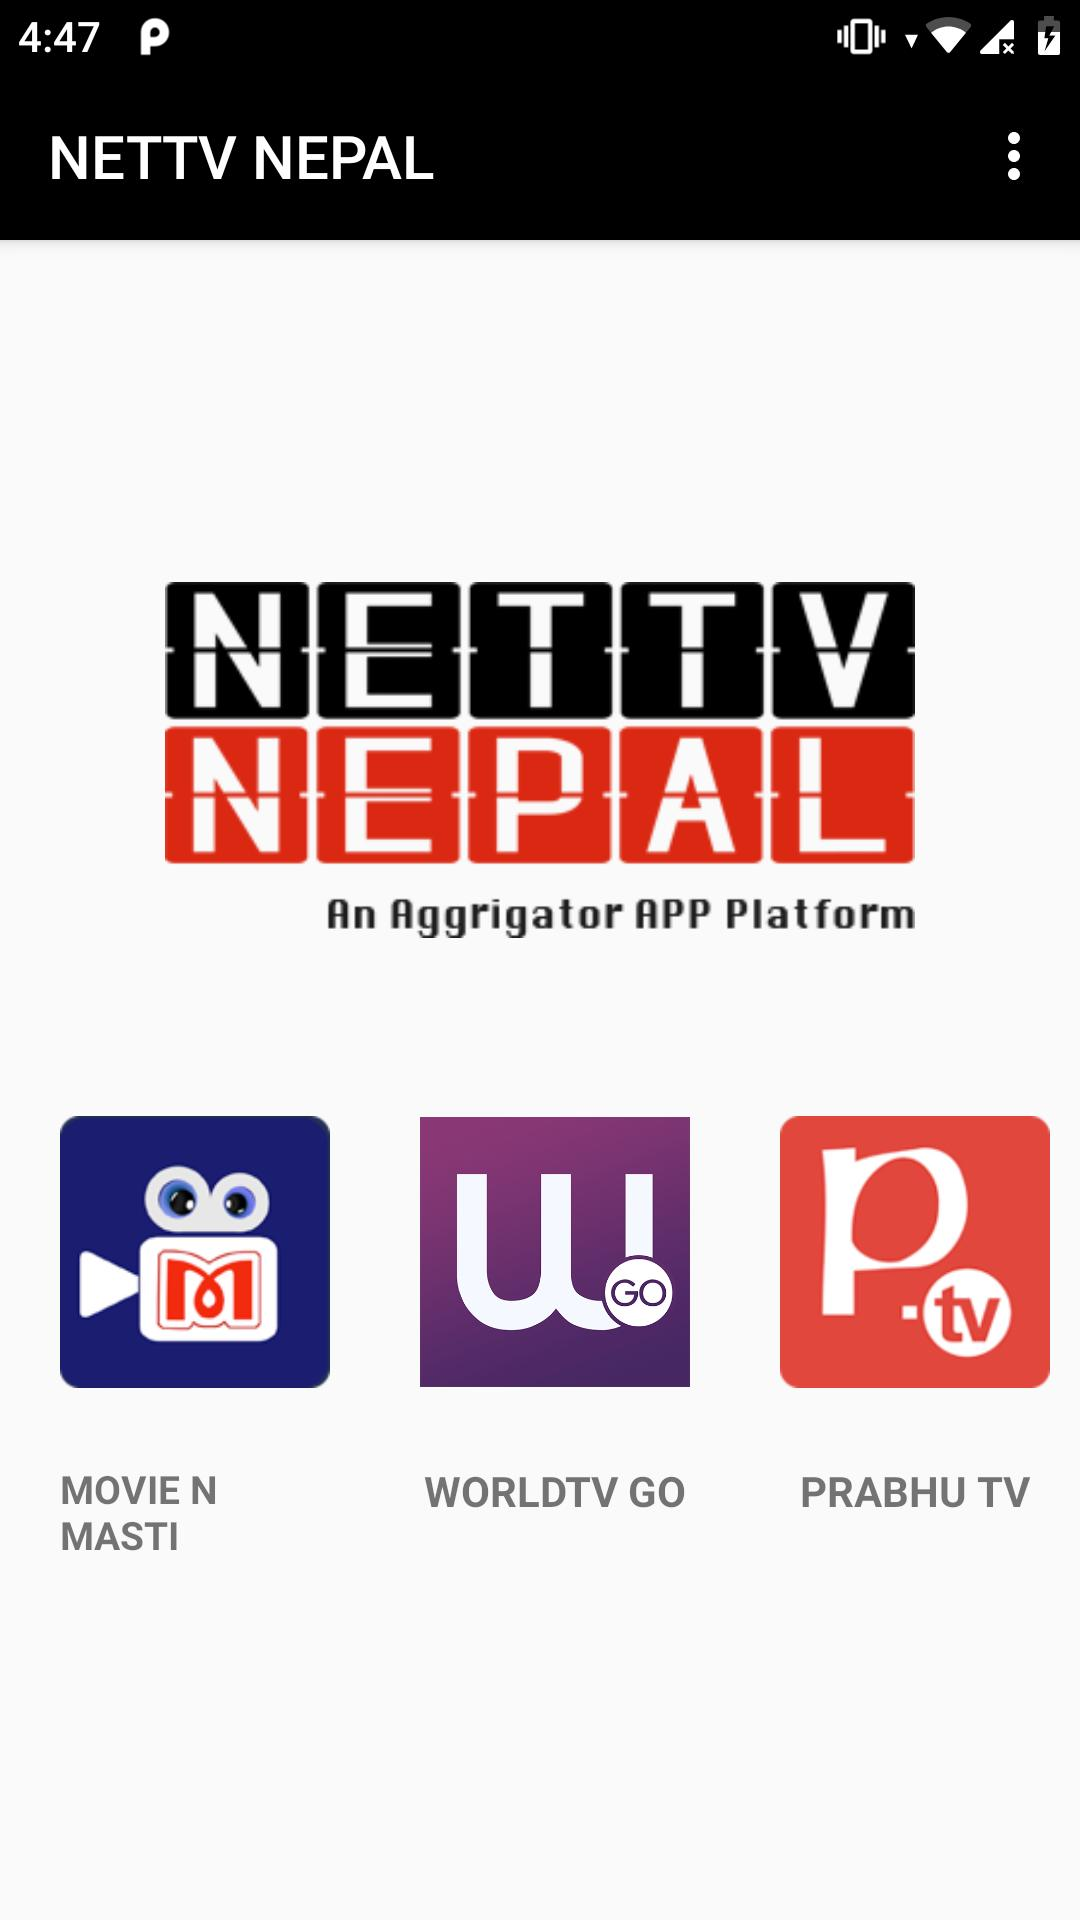 NETTV NEPAL for Android - APK Download